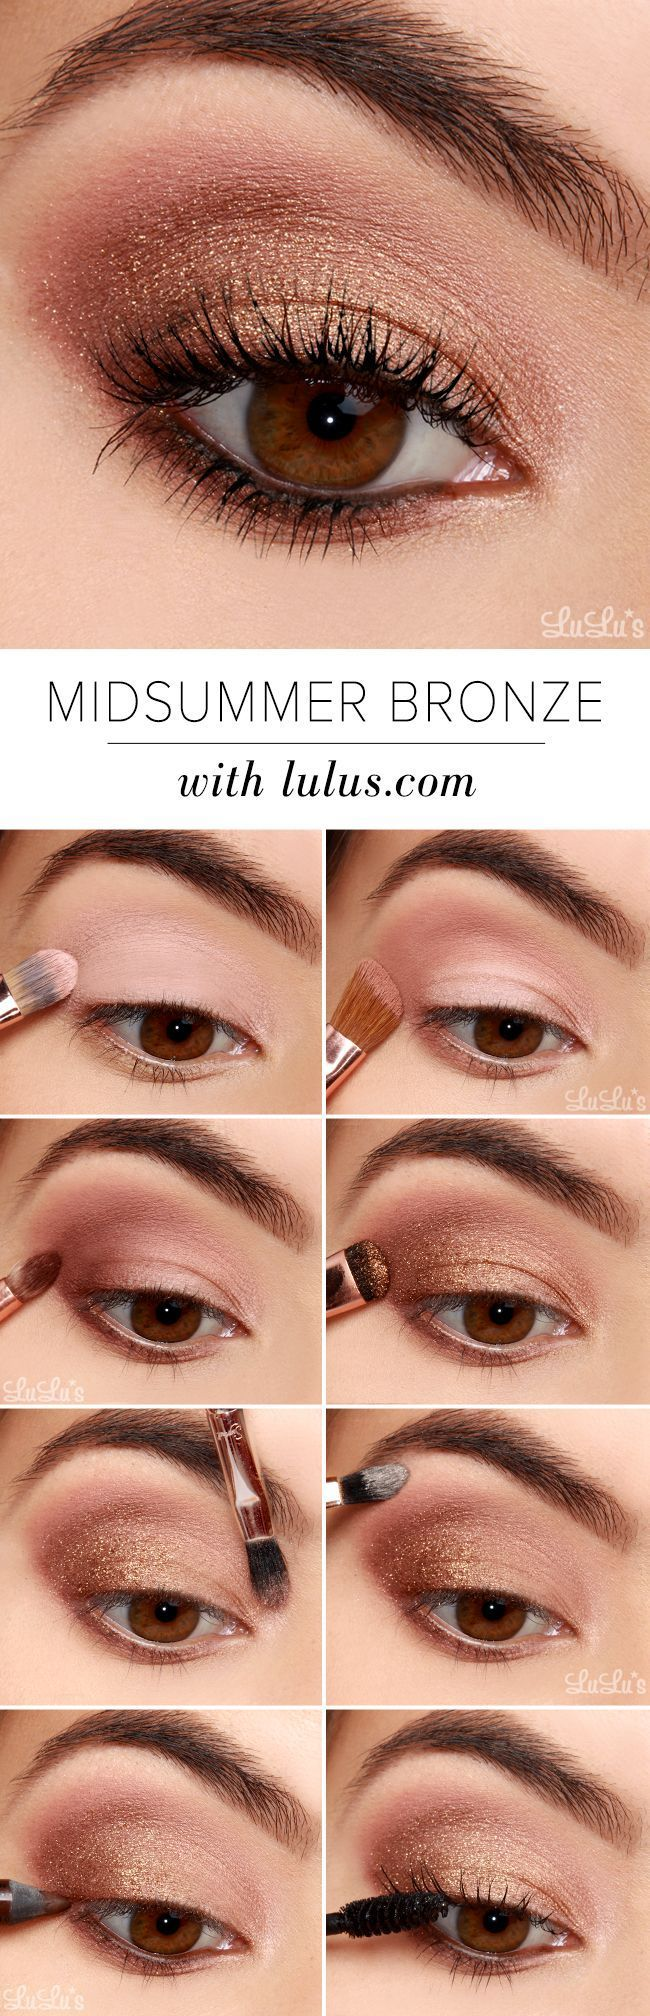 Midsummer Bronze Eyeshadow Tutorial